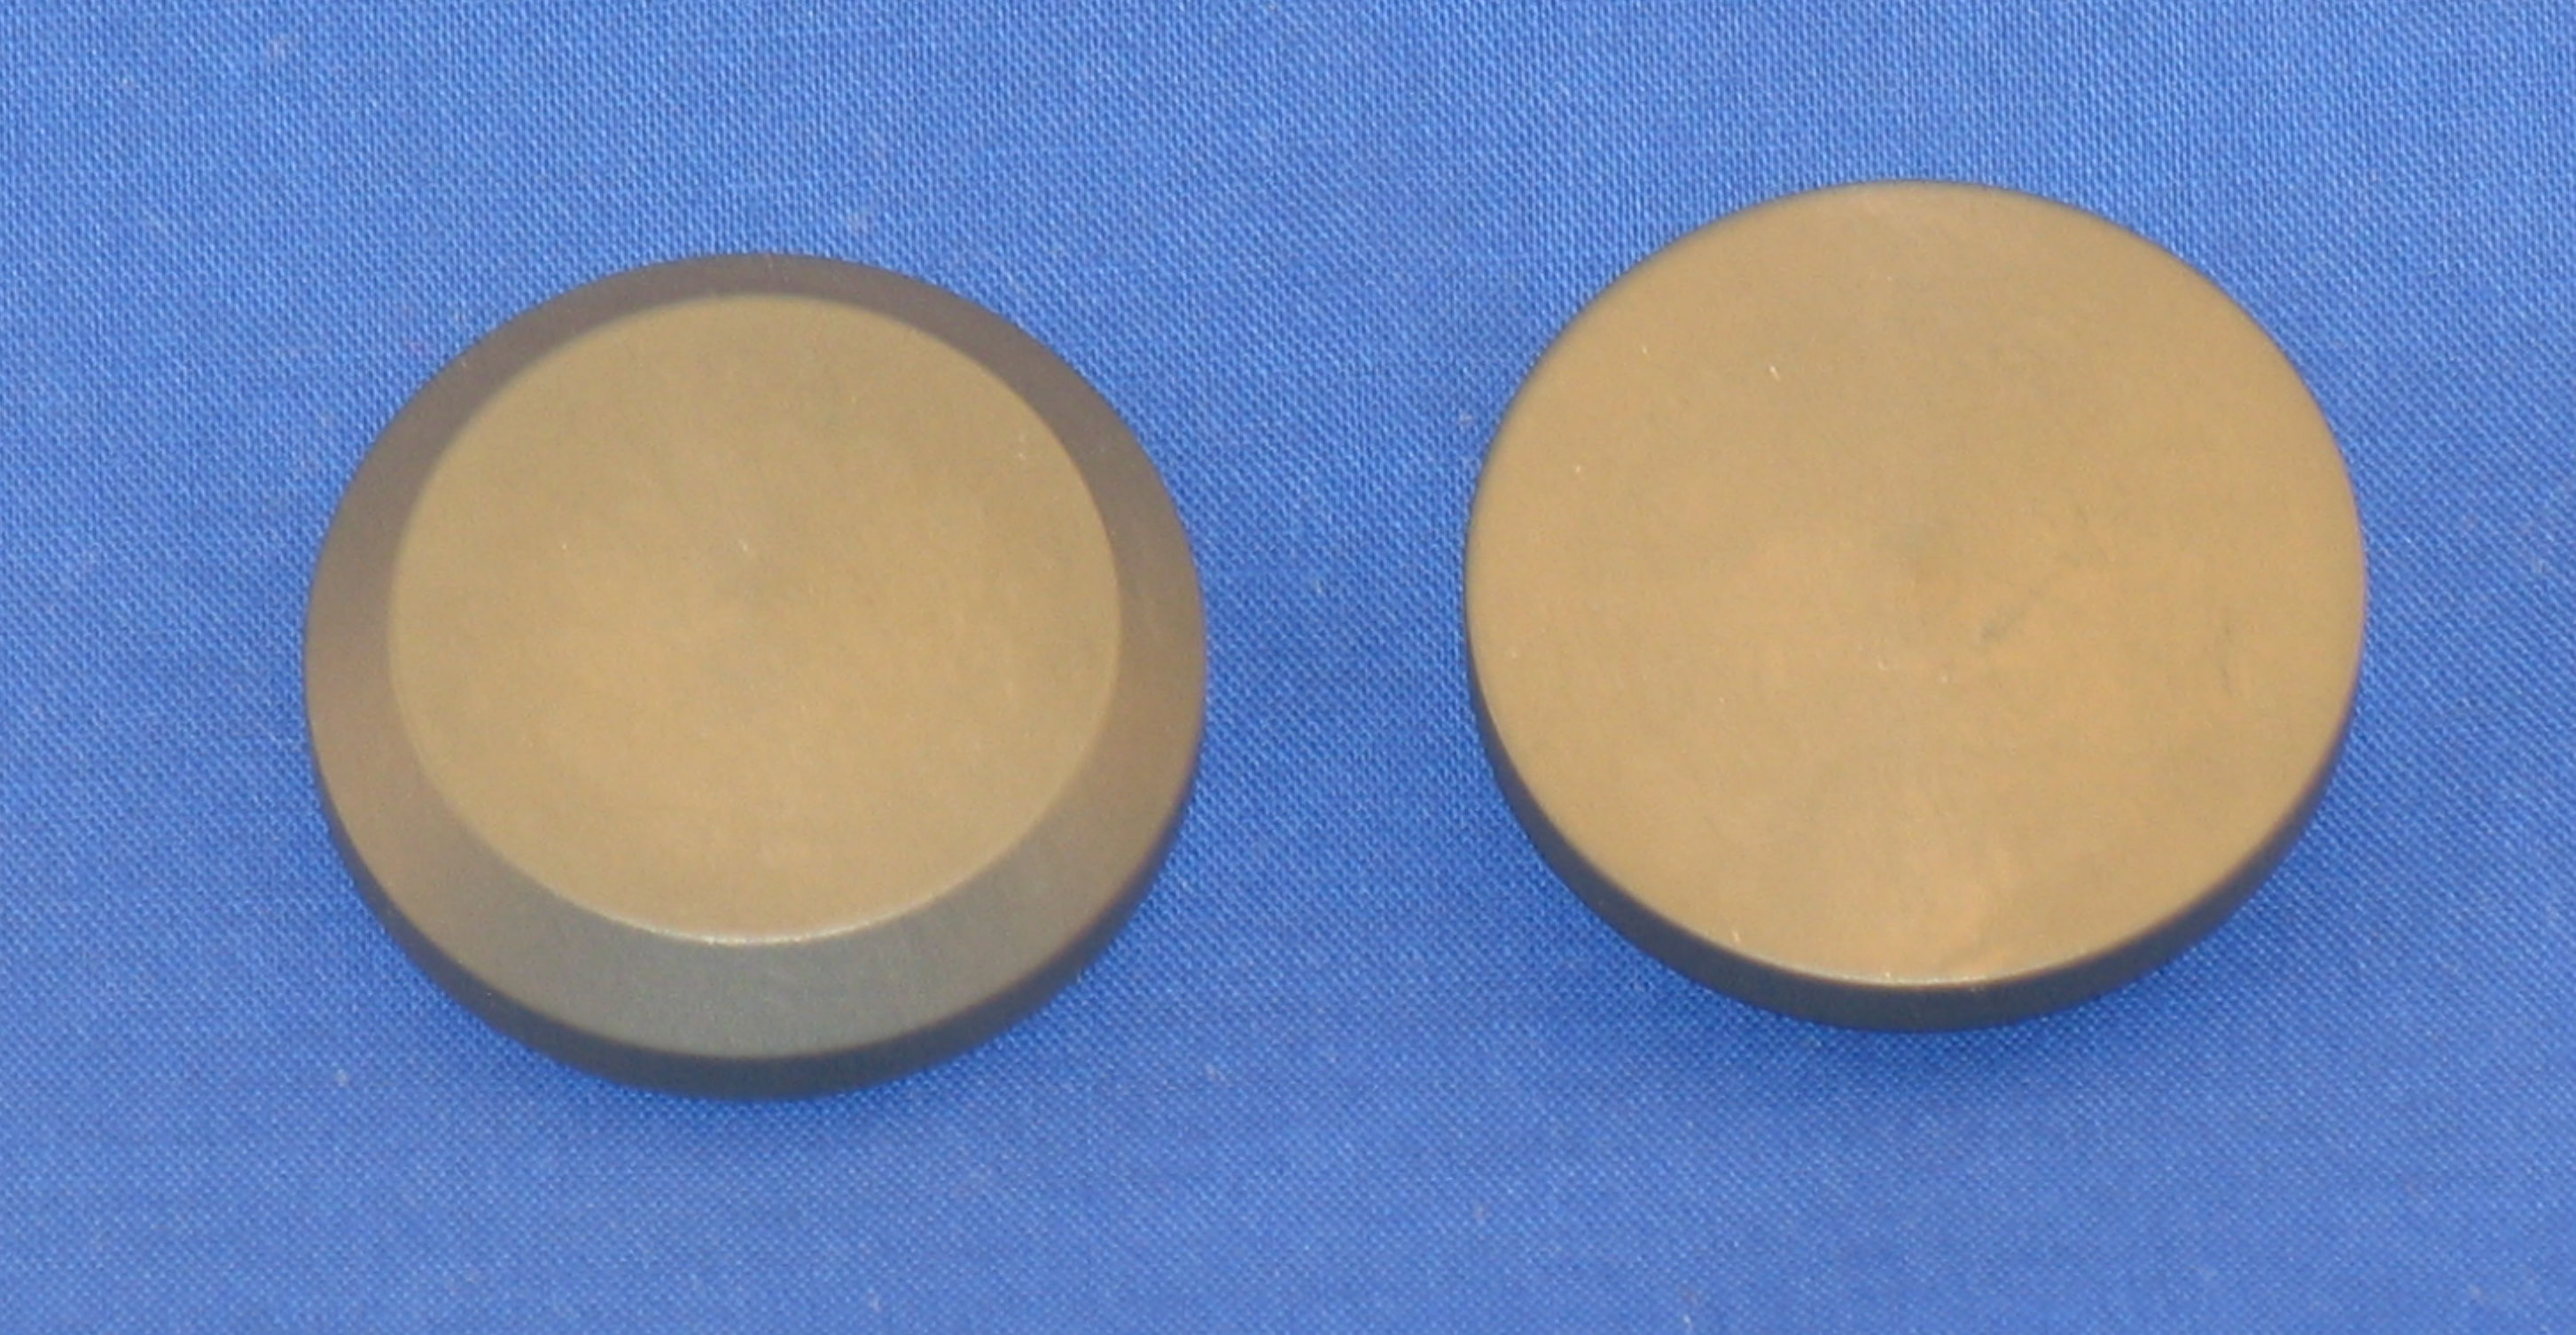 DIS-0010 Discharge Button/Wafer